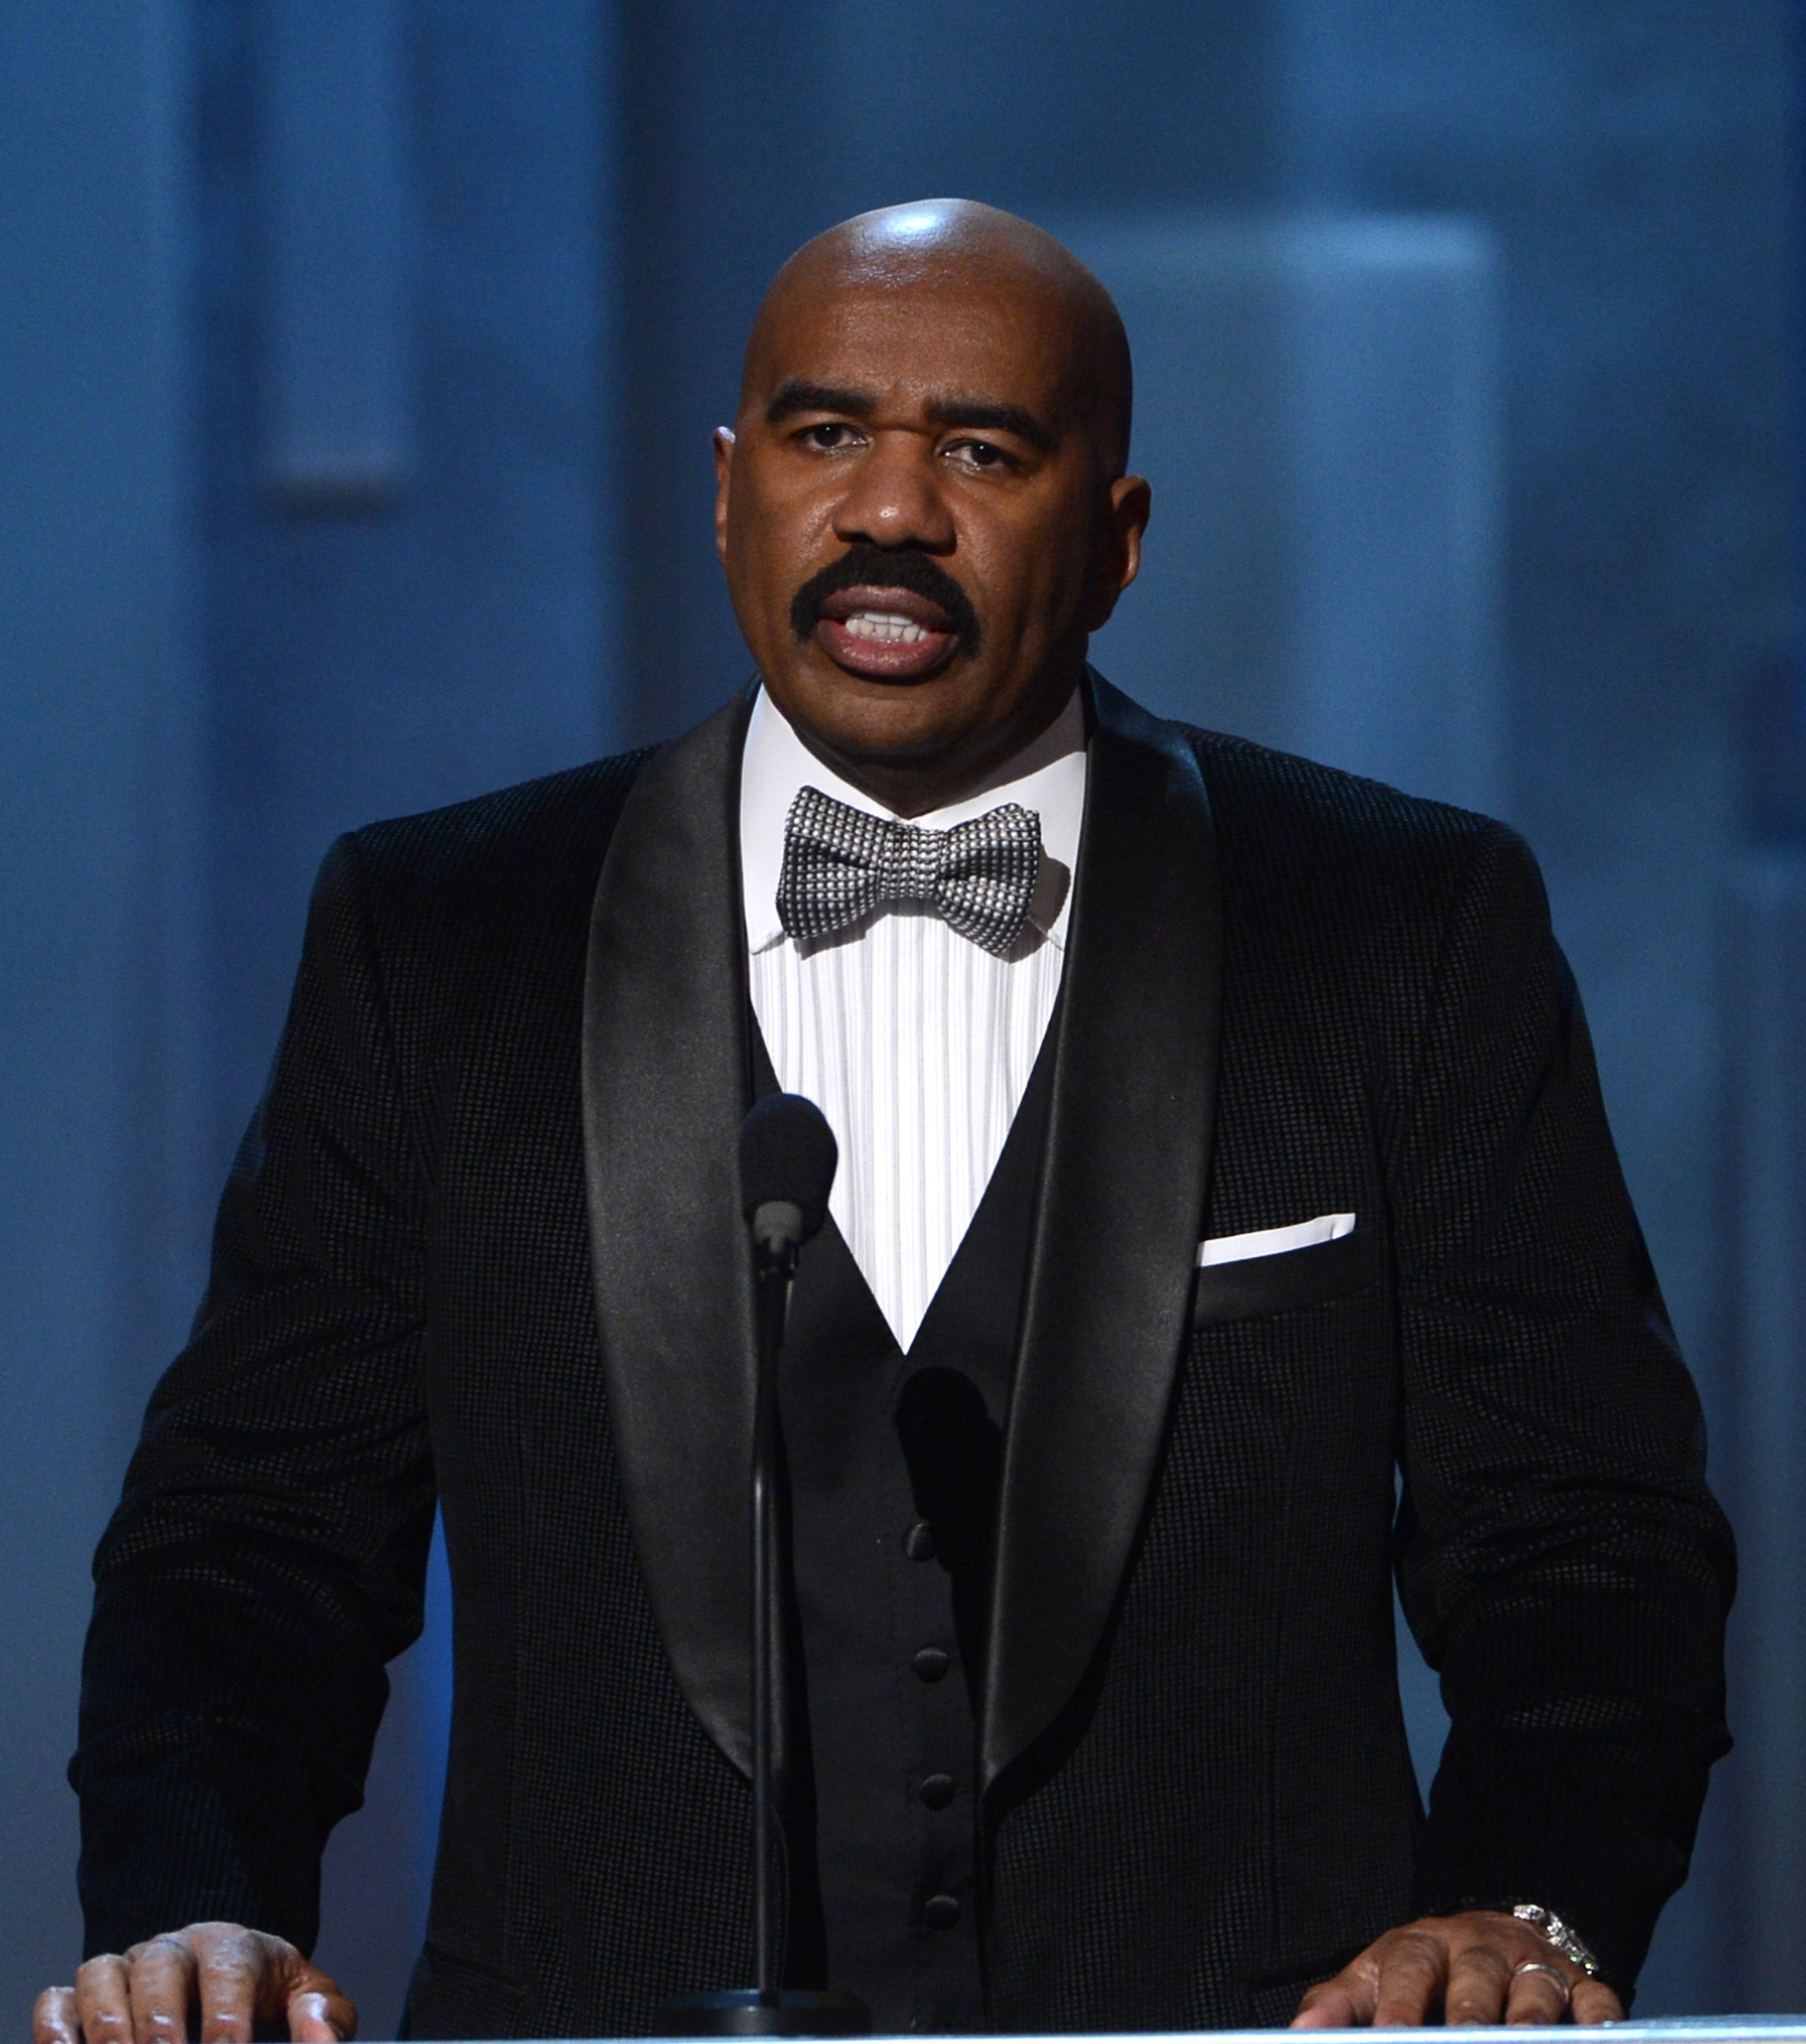 Host Steve Harvey during the 44th NAACP Image Awards at The Shrine Auditorium in Los Angeles, California | Photo: Kevin Winter/Getty Images for NAACP Image Awards